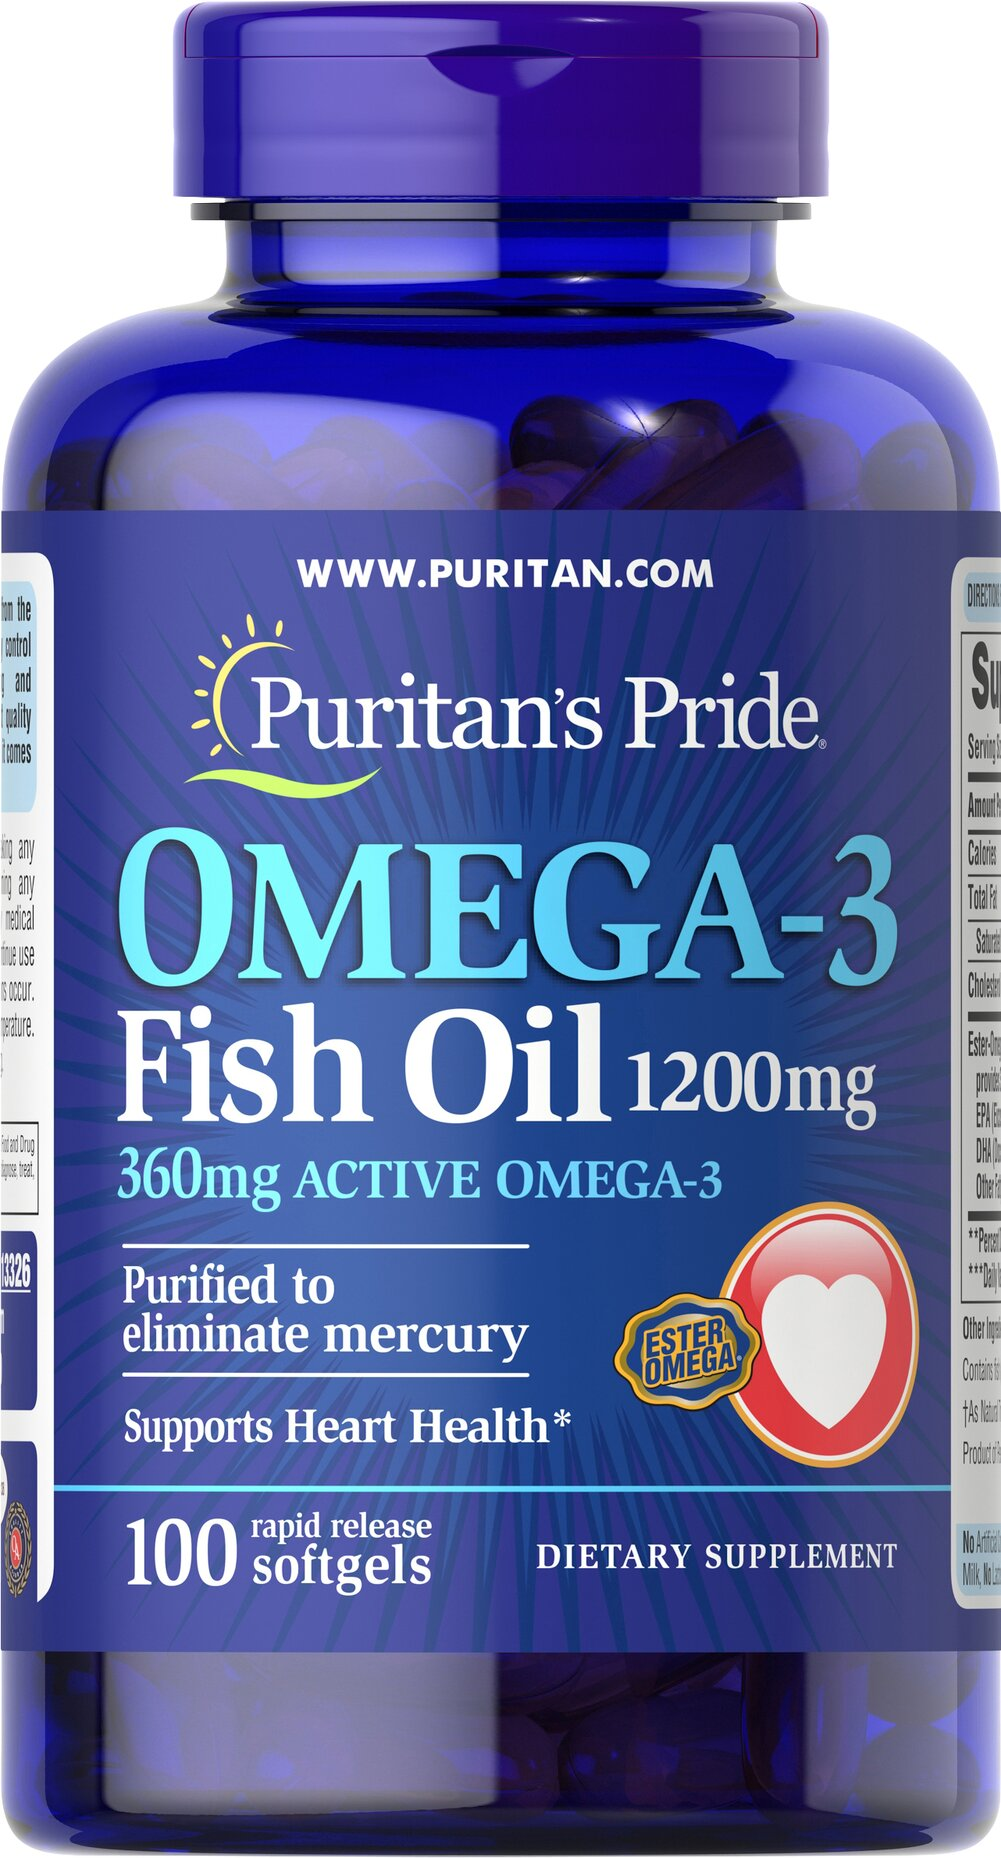 Omega-3 Fish Oil 1200 mg (360 mg Active Omega-3) <p><span></span></p><p>This Ester-Omega® Fish Oil provides 360mg of total omega-3 fatty acids, comprising of EPA, DHA and other fatty acids. EPA and DHA fatty acids support heart health.** Purified to eliminate mercury. Rapid release softgels.</p><p></p><p></p> 100 Softgels 1200 mg $14.49